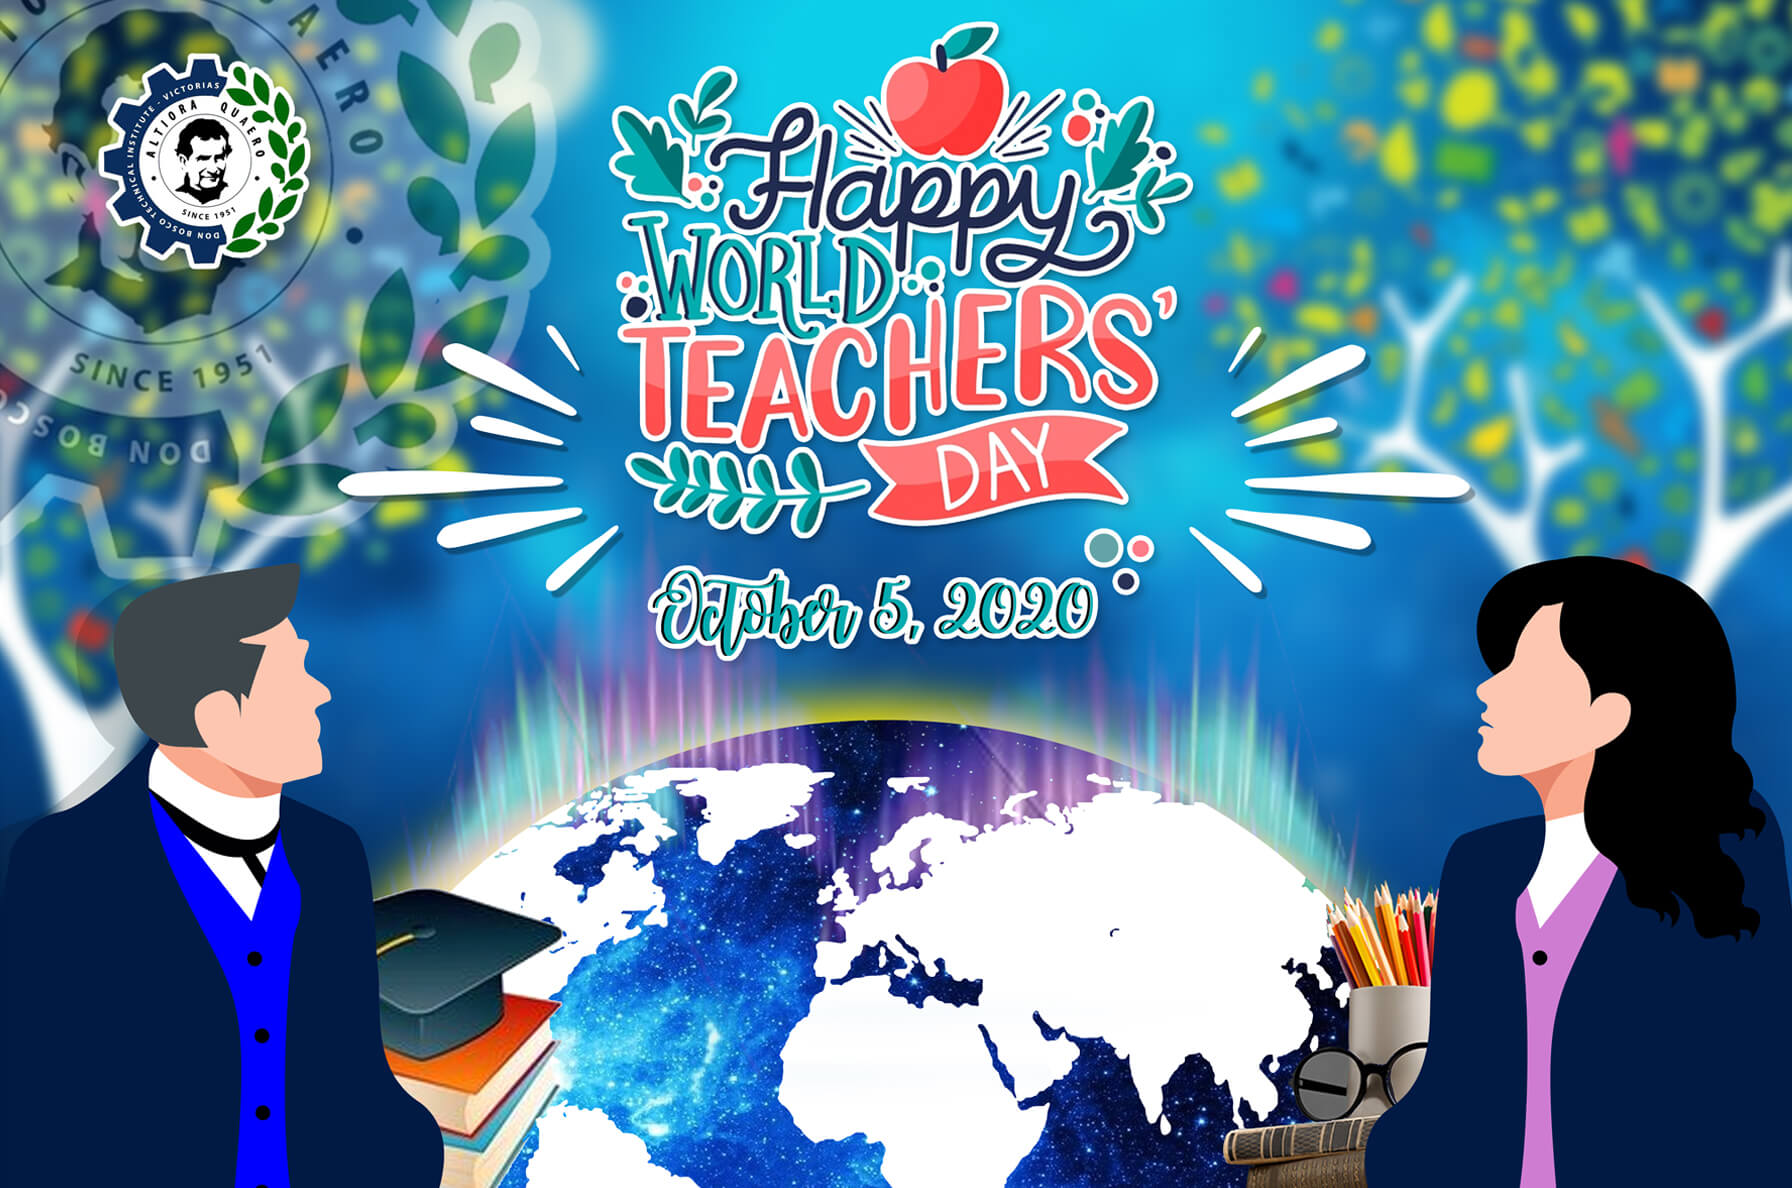 TEACHER'S DAY CELEBRATION 2020